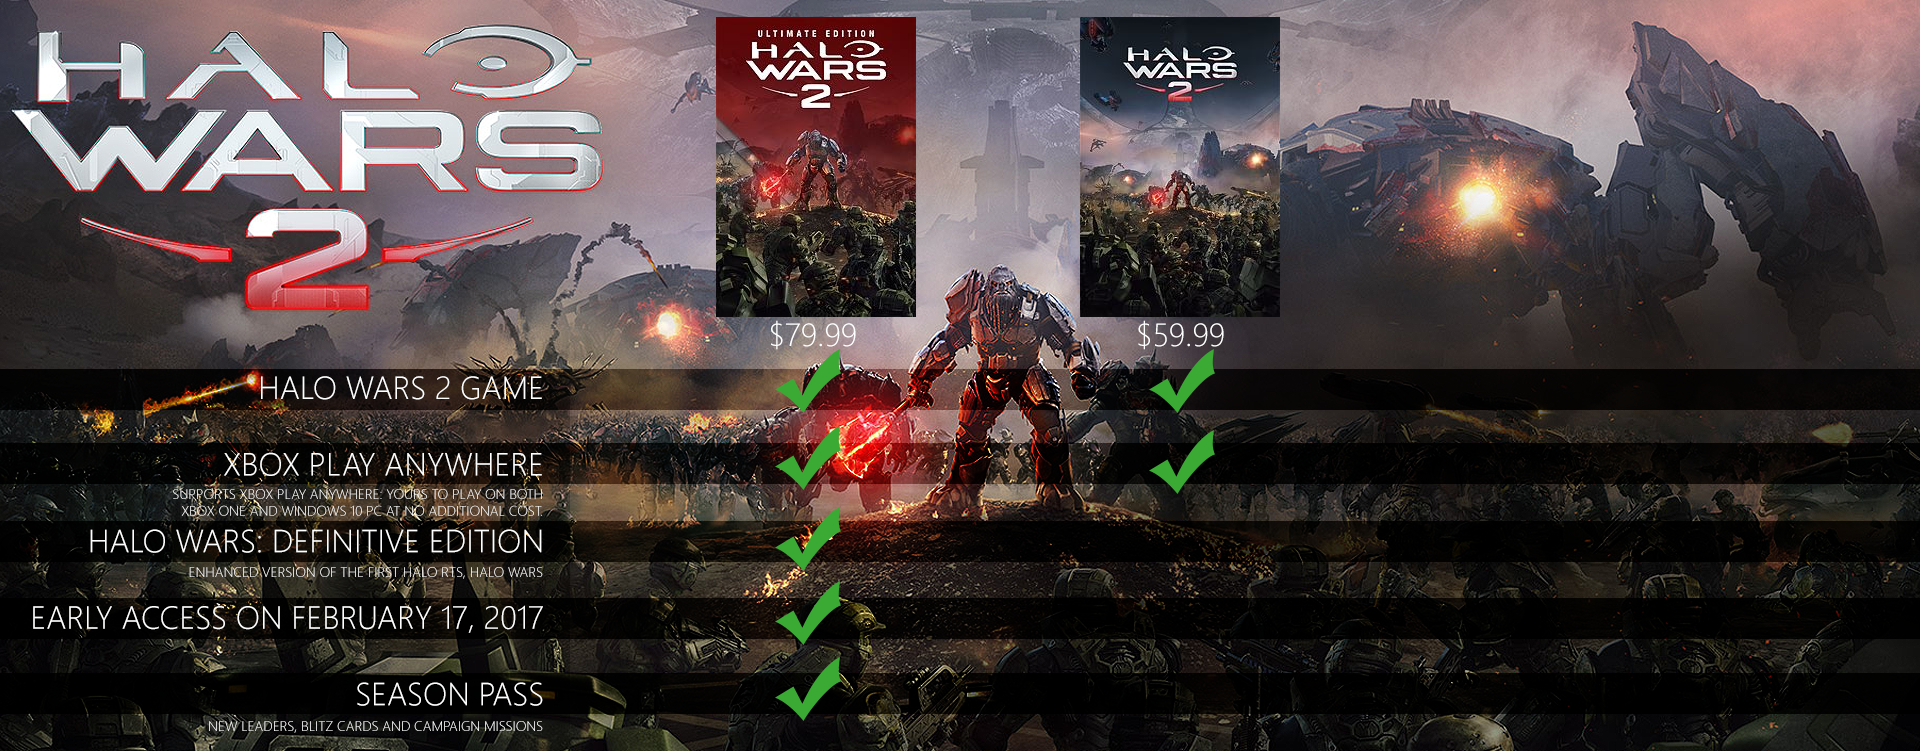 halo wars 2 activation key oct 2017